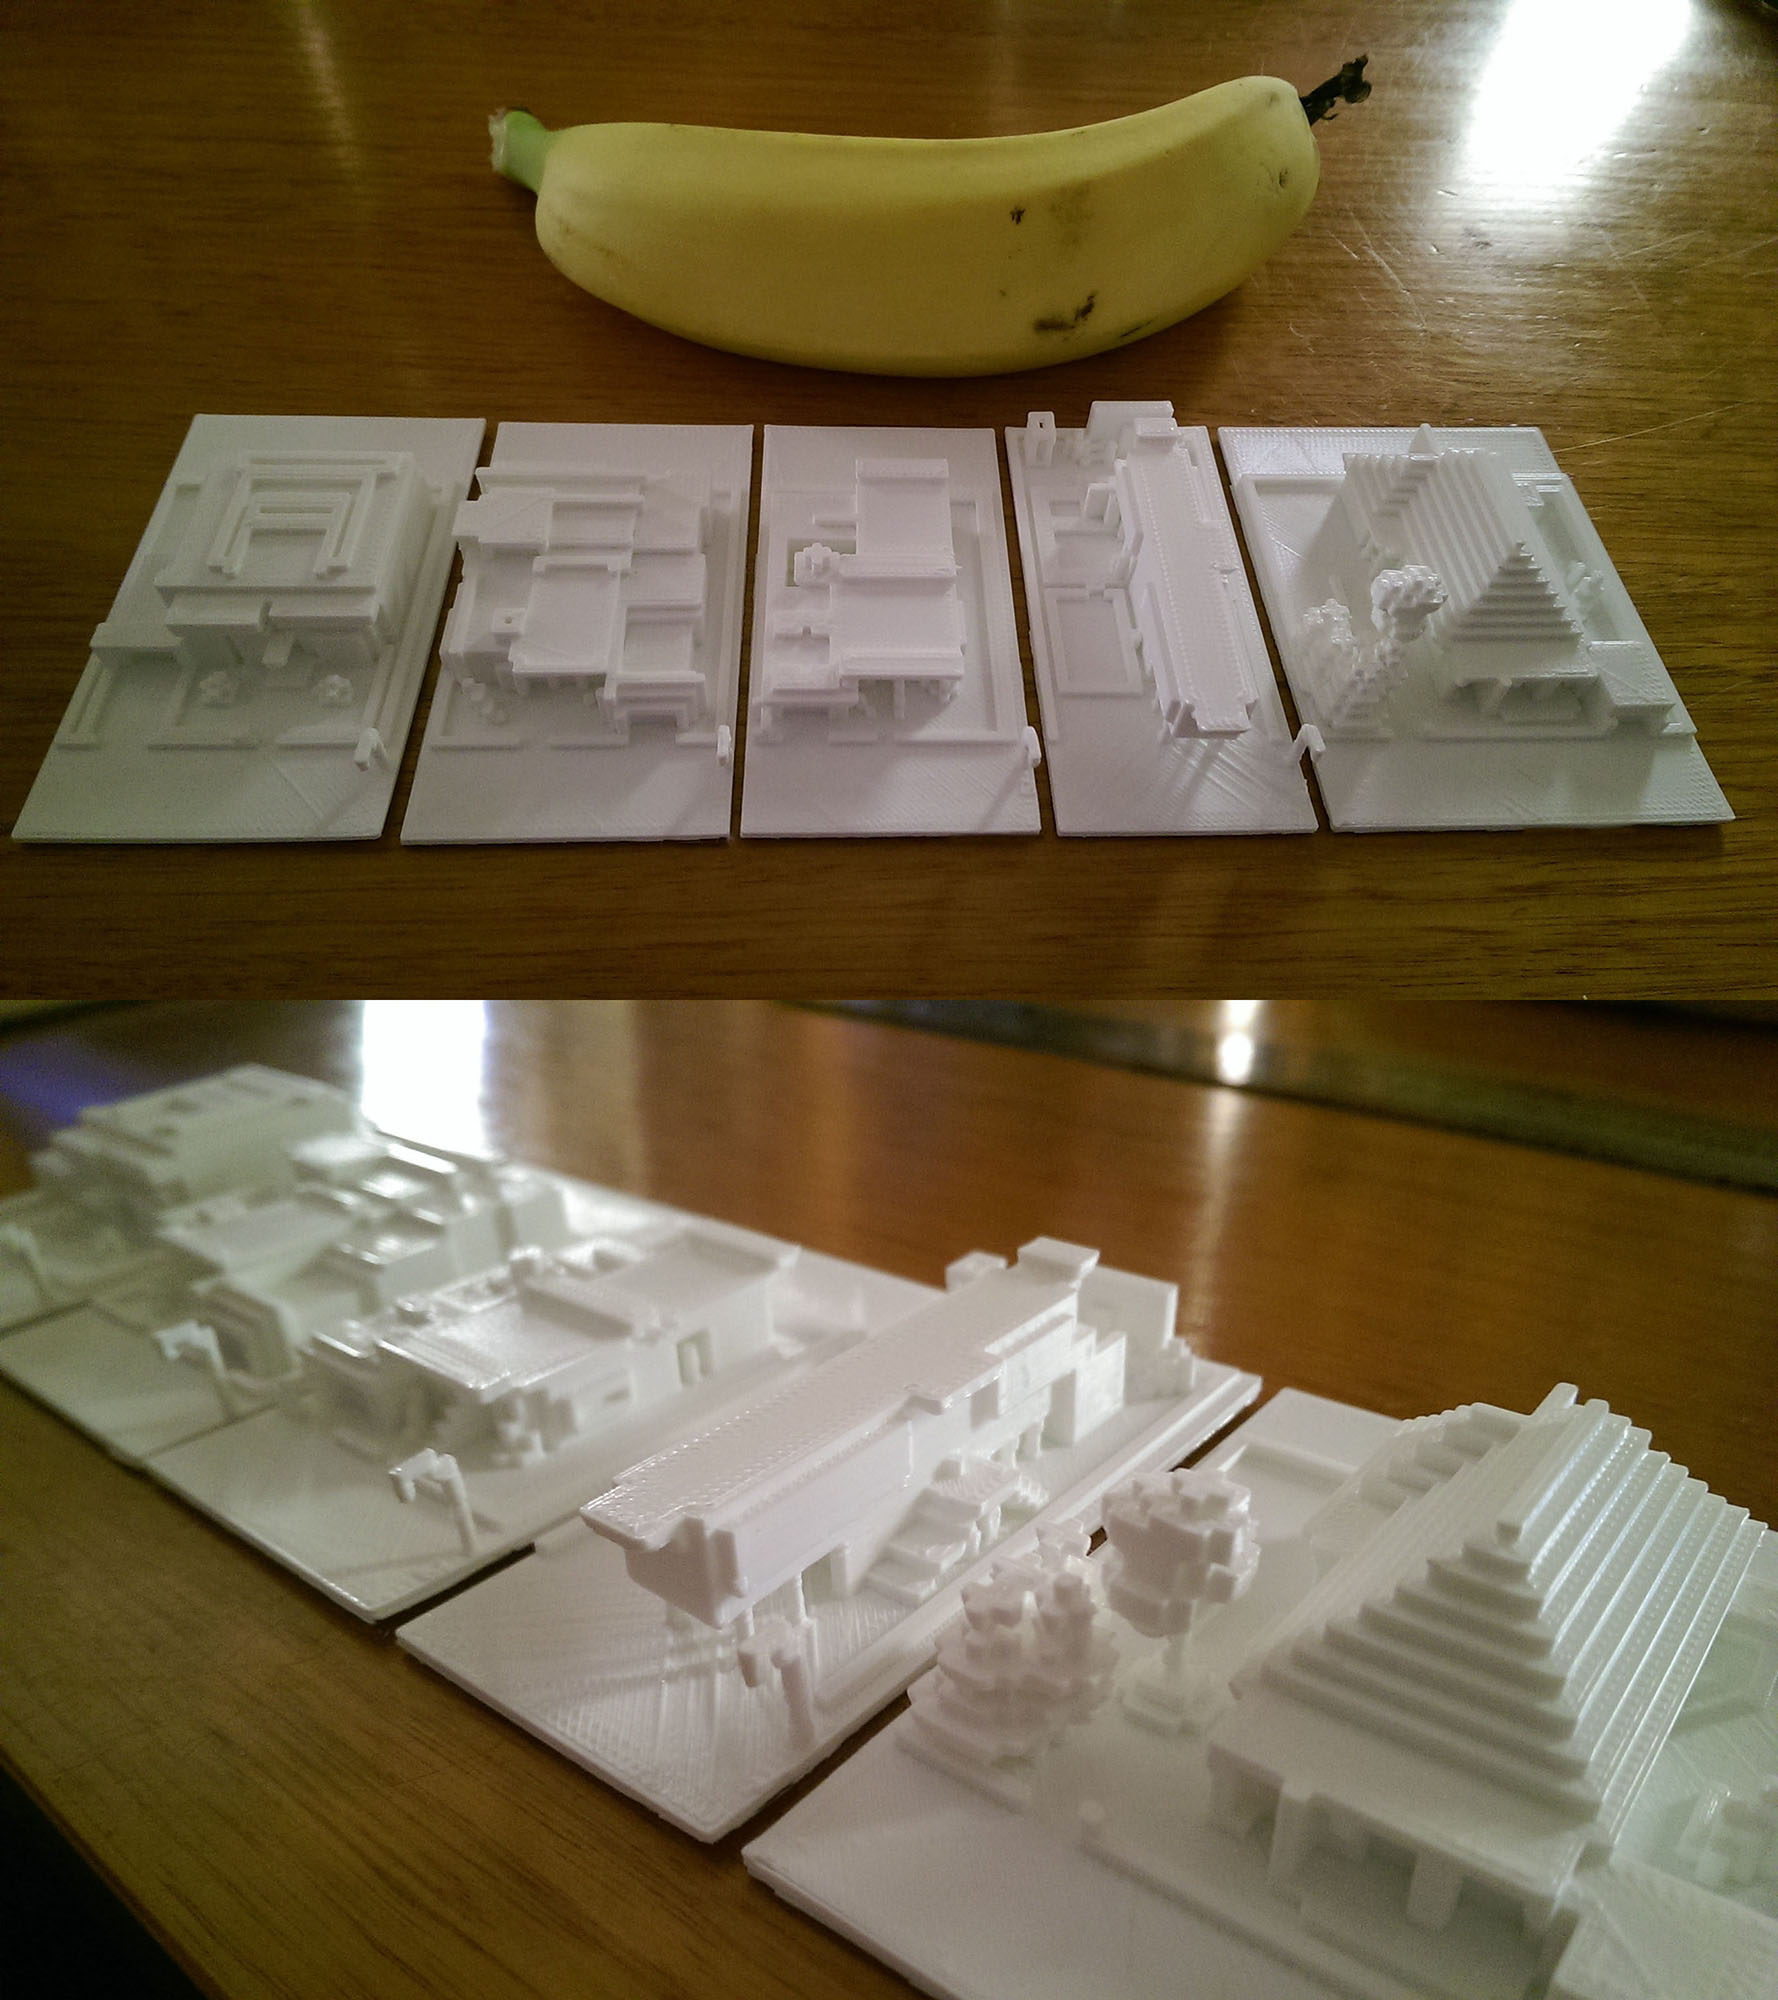 Miniature Minecraft houses, exported directly from the game. Banana for scale.